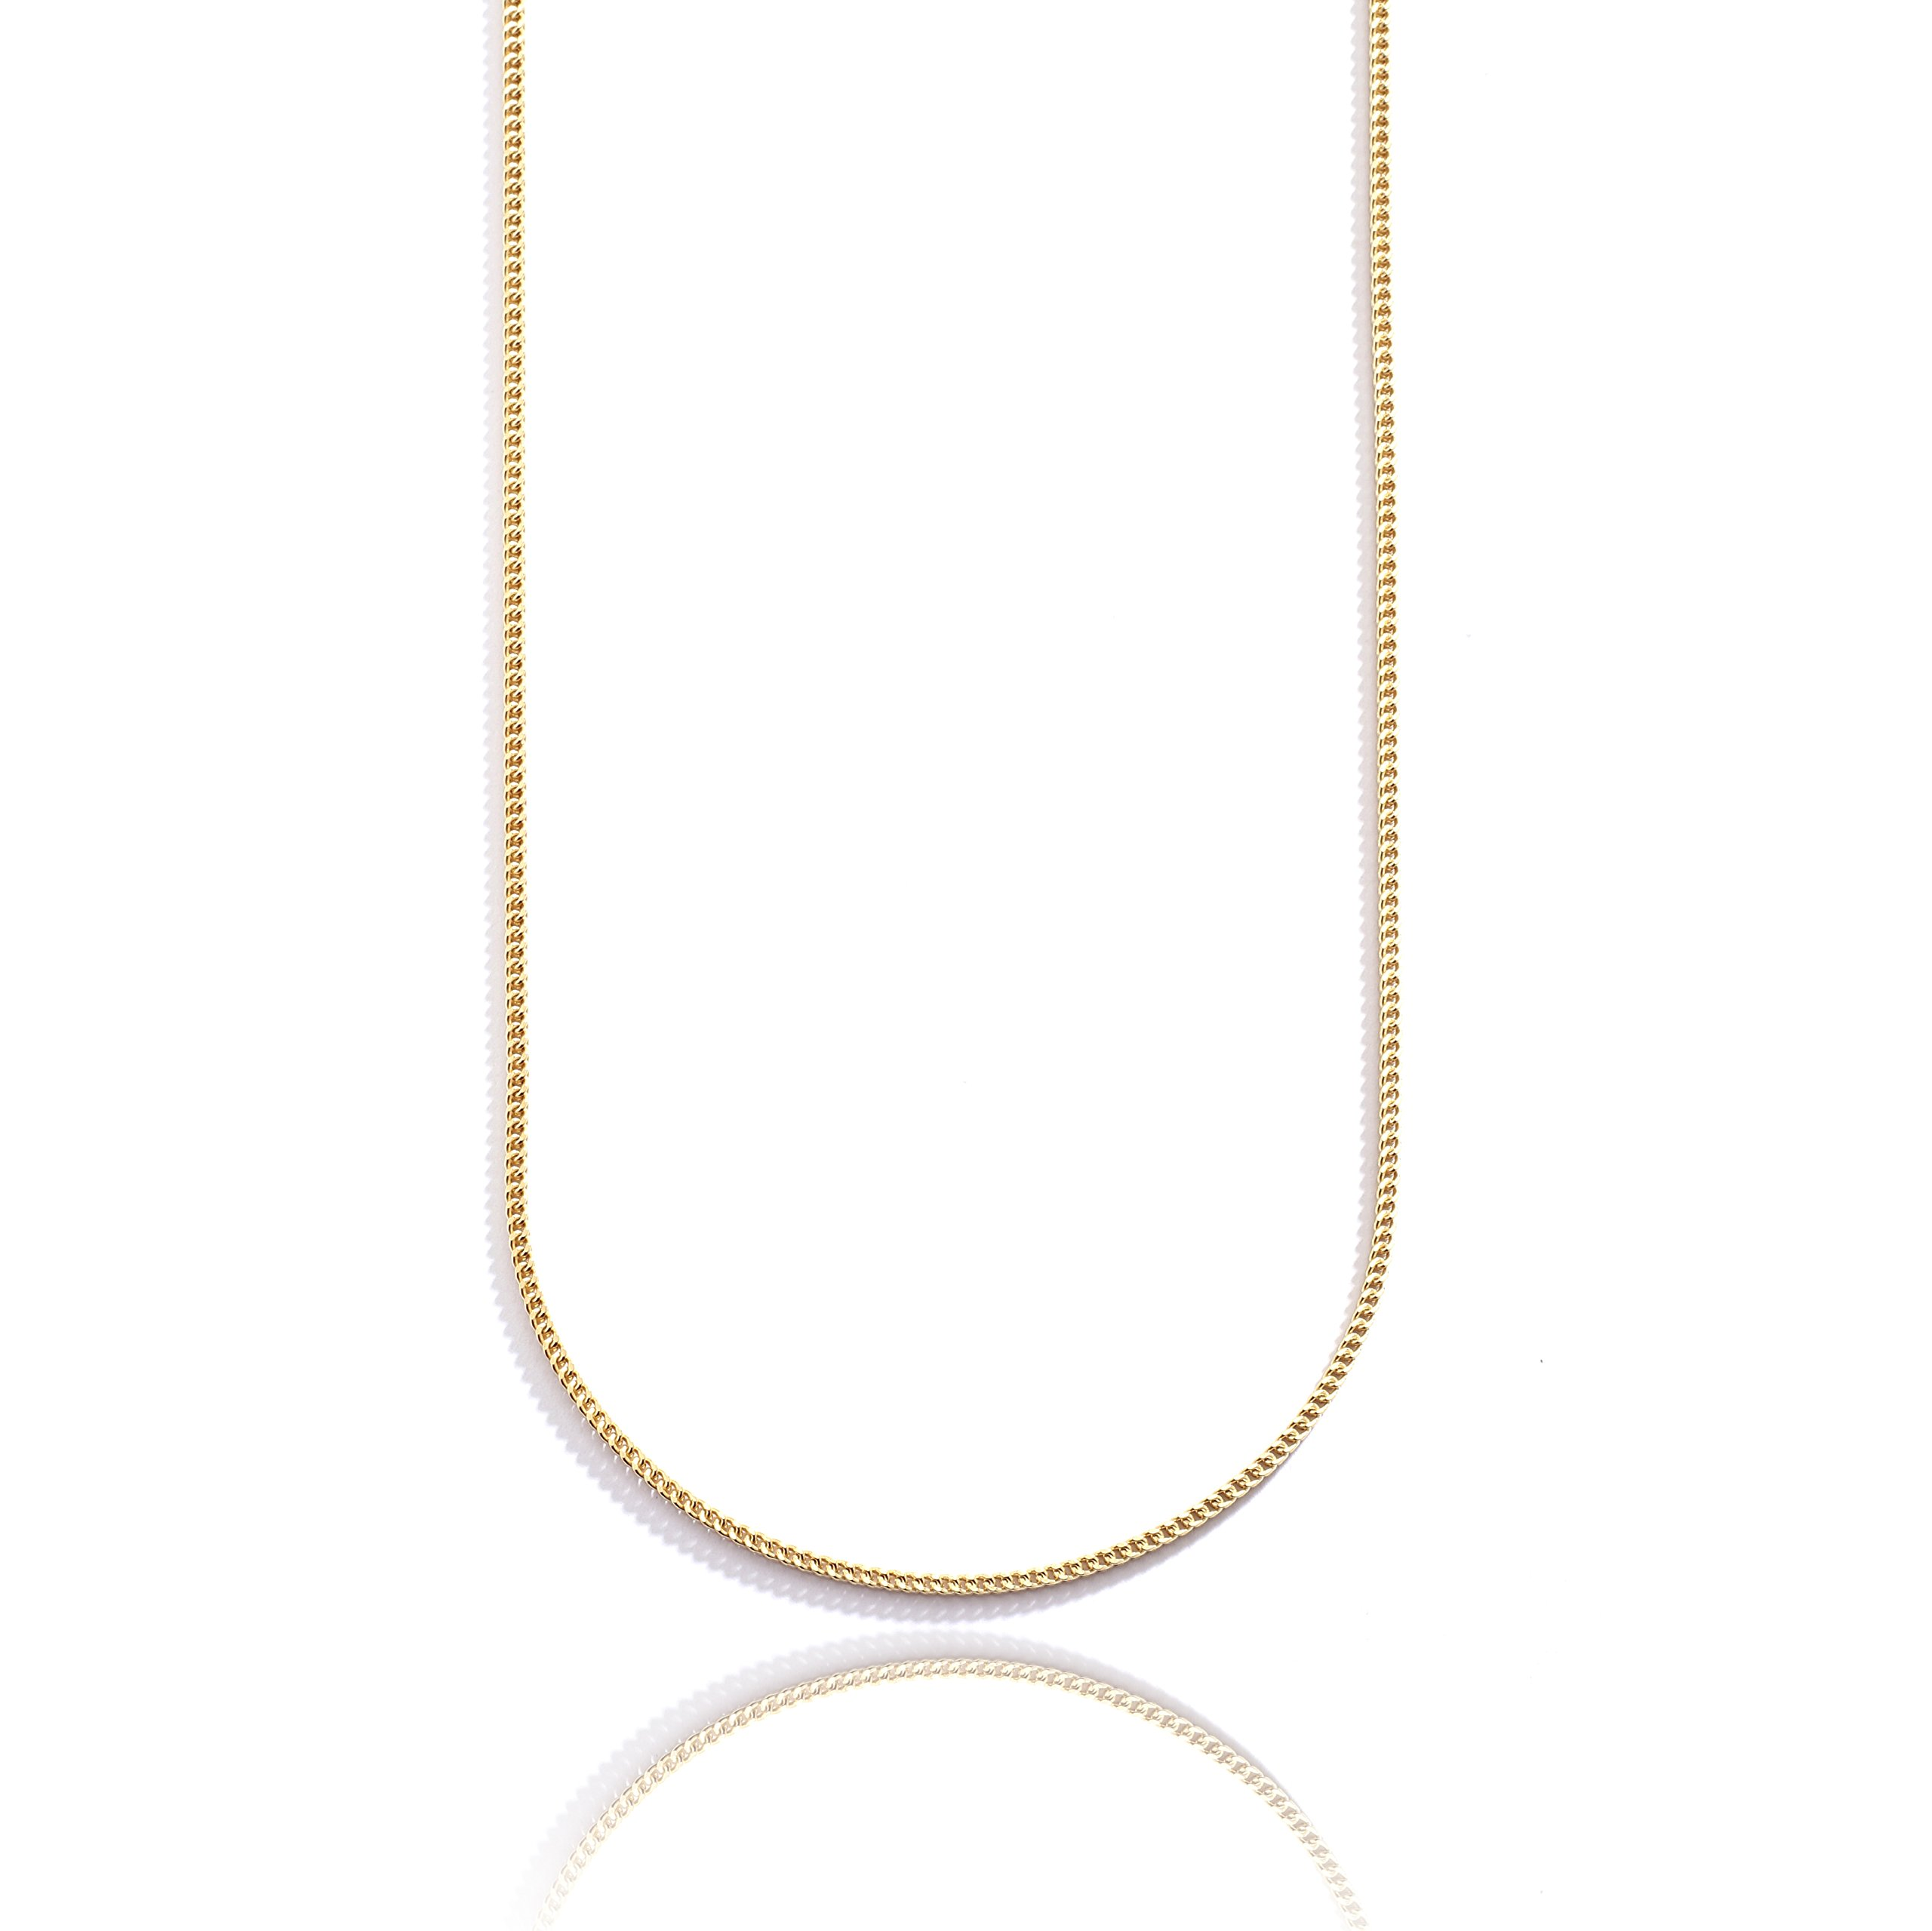 30 Inch 10k Yellow Gold Hollow Franco Chain Necklace with Lobster Clasp for Women and Men, 2.2mm